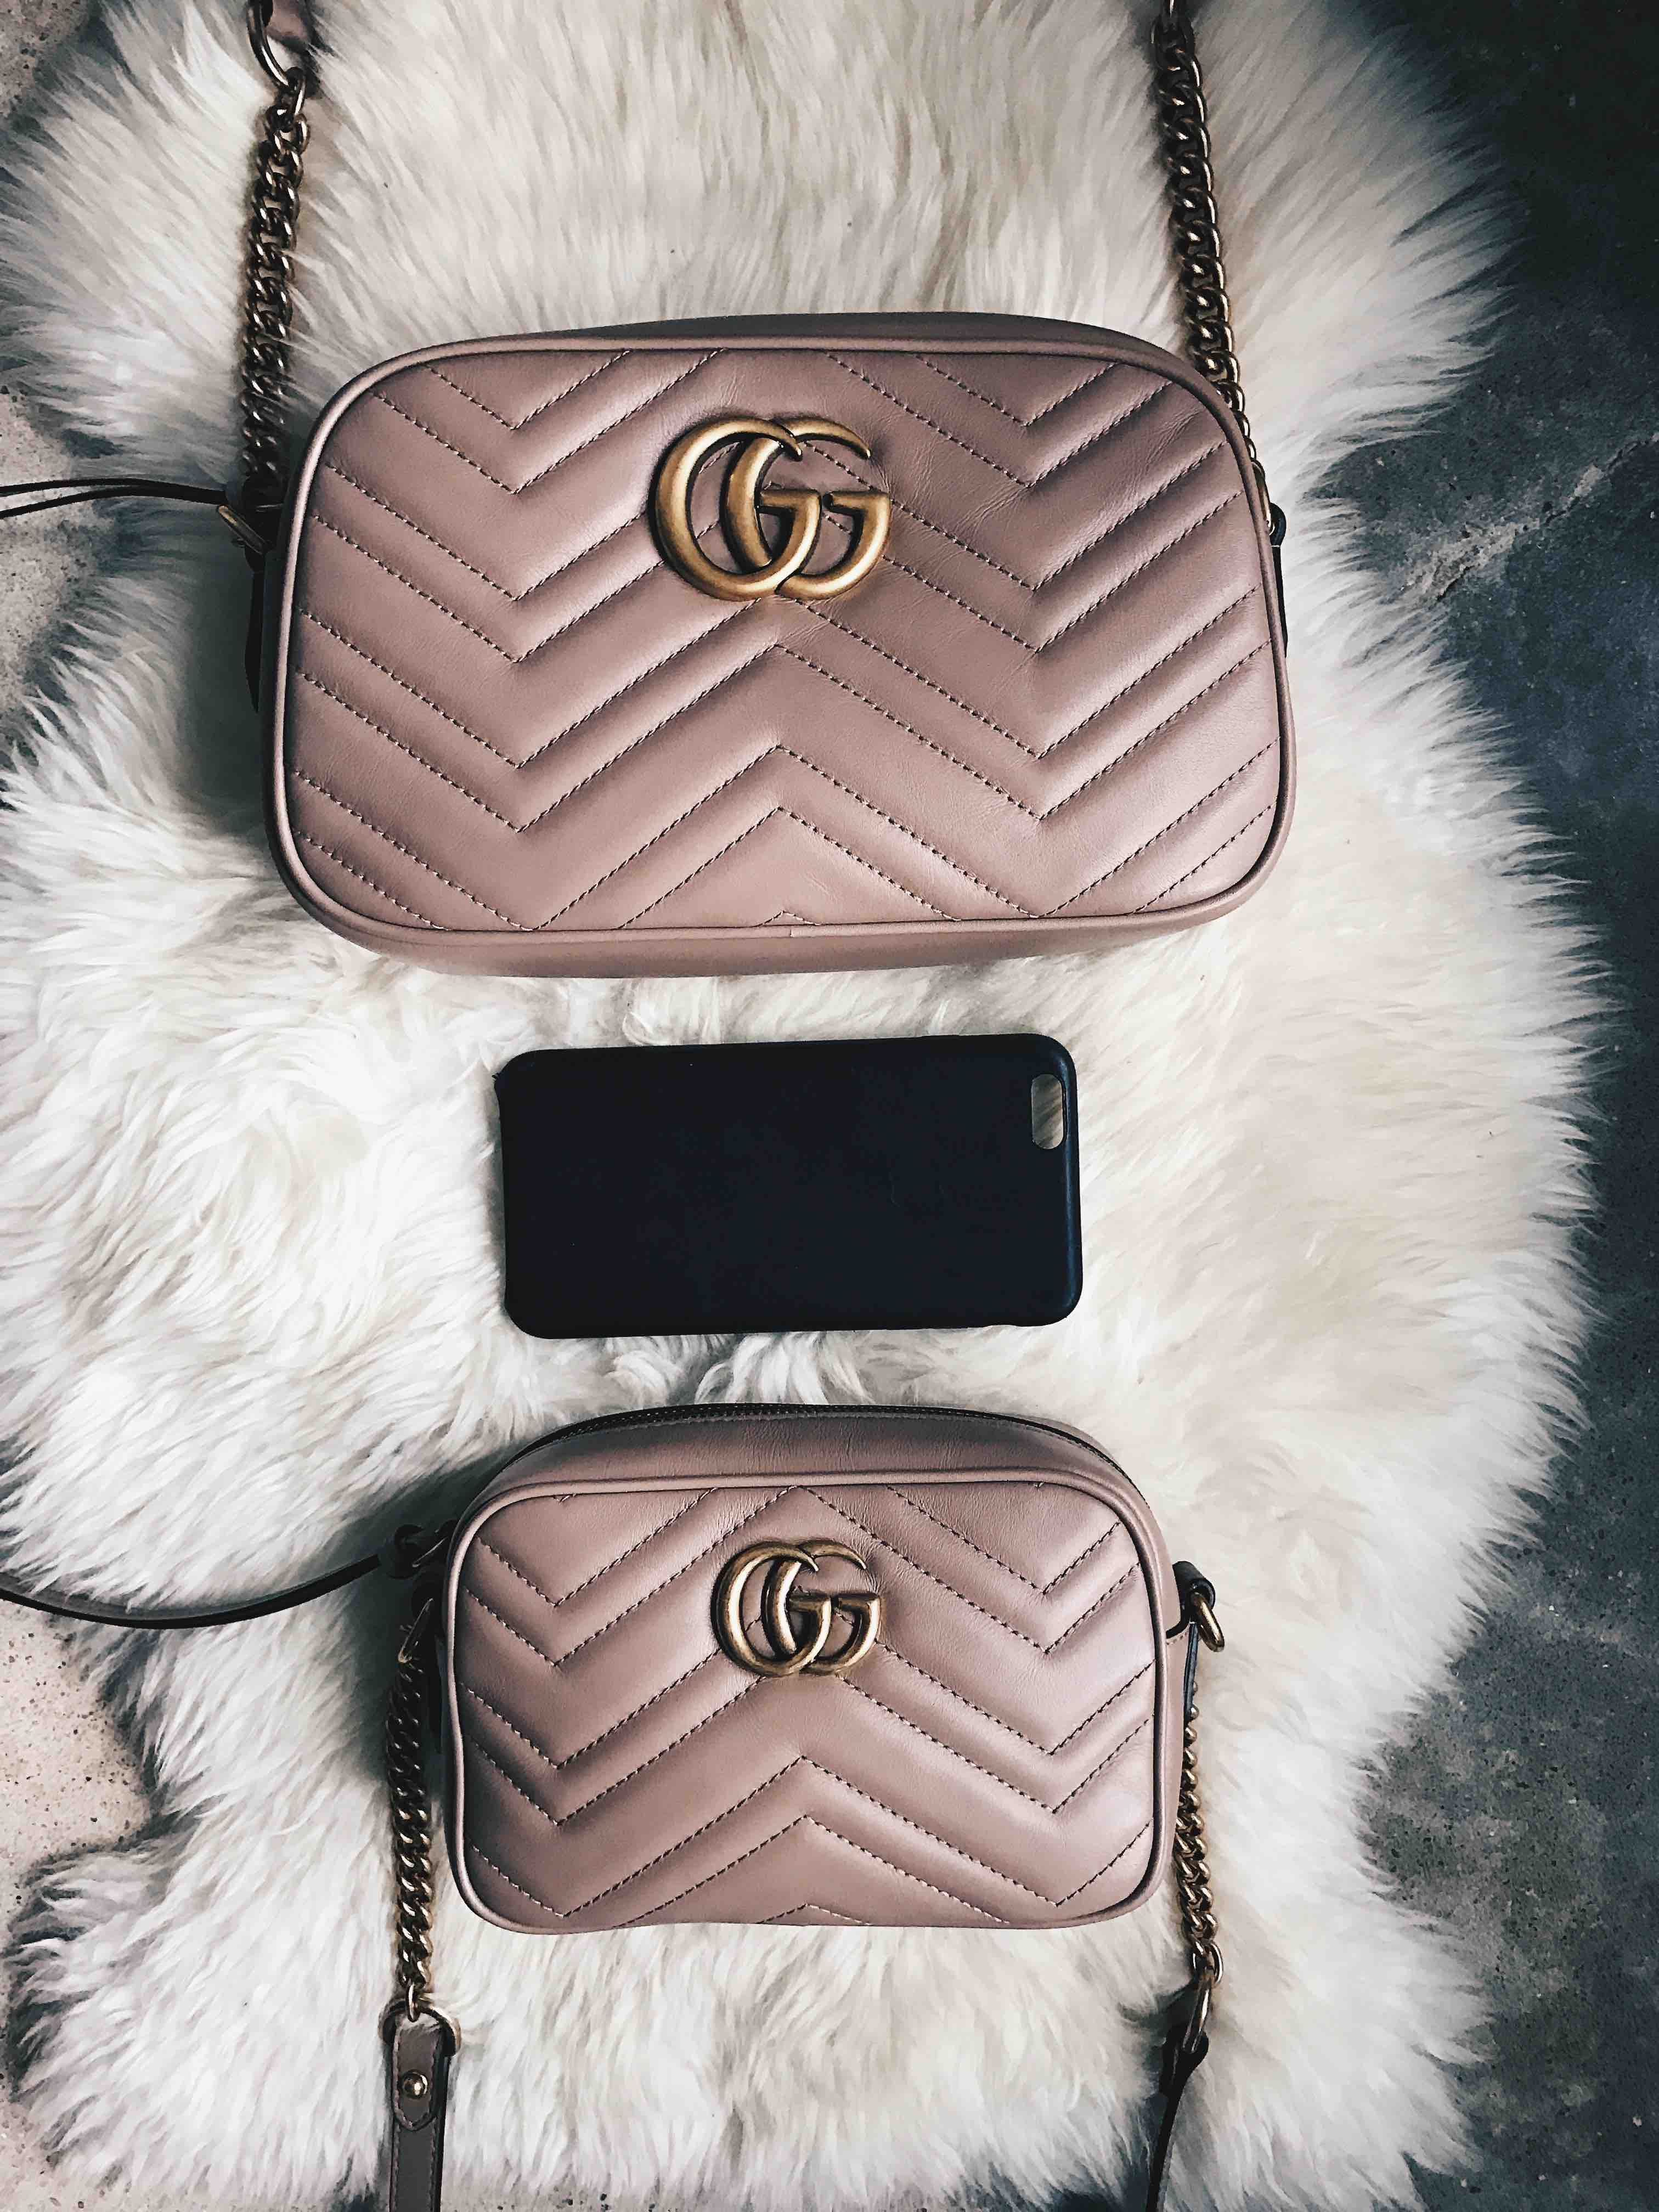 Dtkaustin Shares The Size Comparison For The Gucci Mini And Small Marmont Crossbody If You Re I Gucci Crossbody Bag Gucci Handbags Crossbody Gucci Marmont Bag